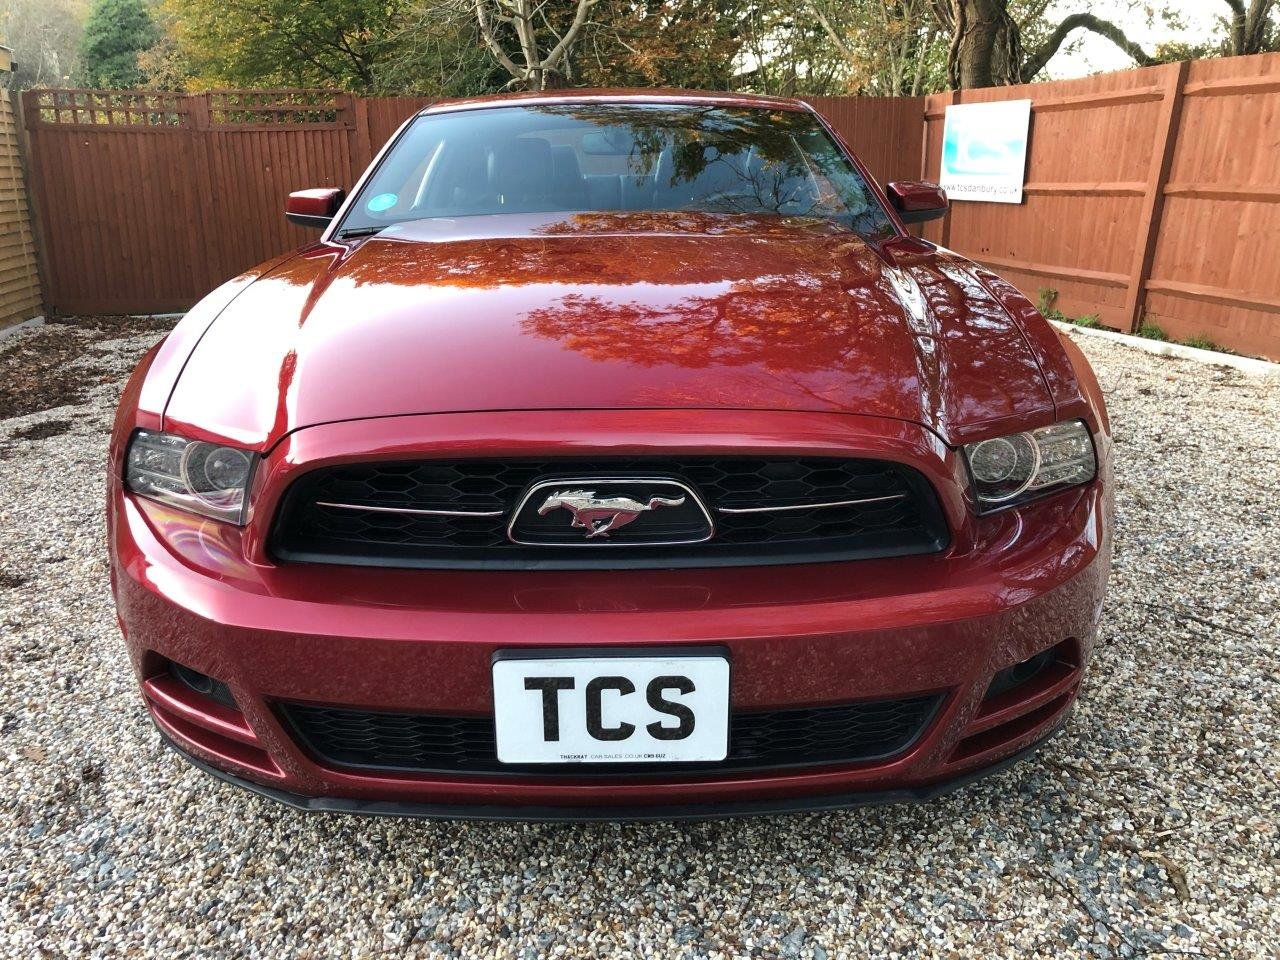 2014 15-Plate UK Registered Mustang Premium Fastback LHD Auto For Sale (picture 4 of 6)